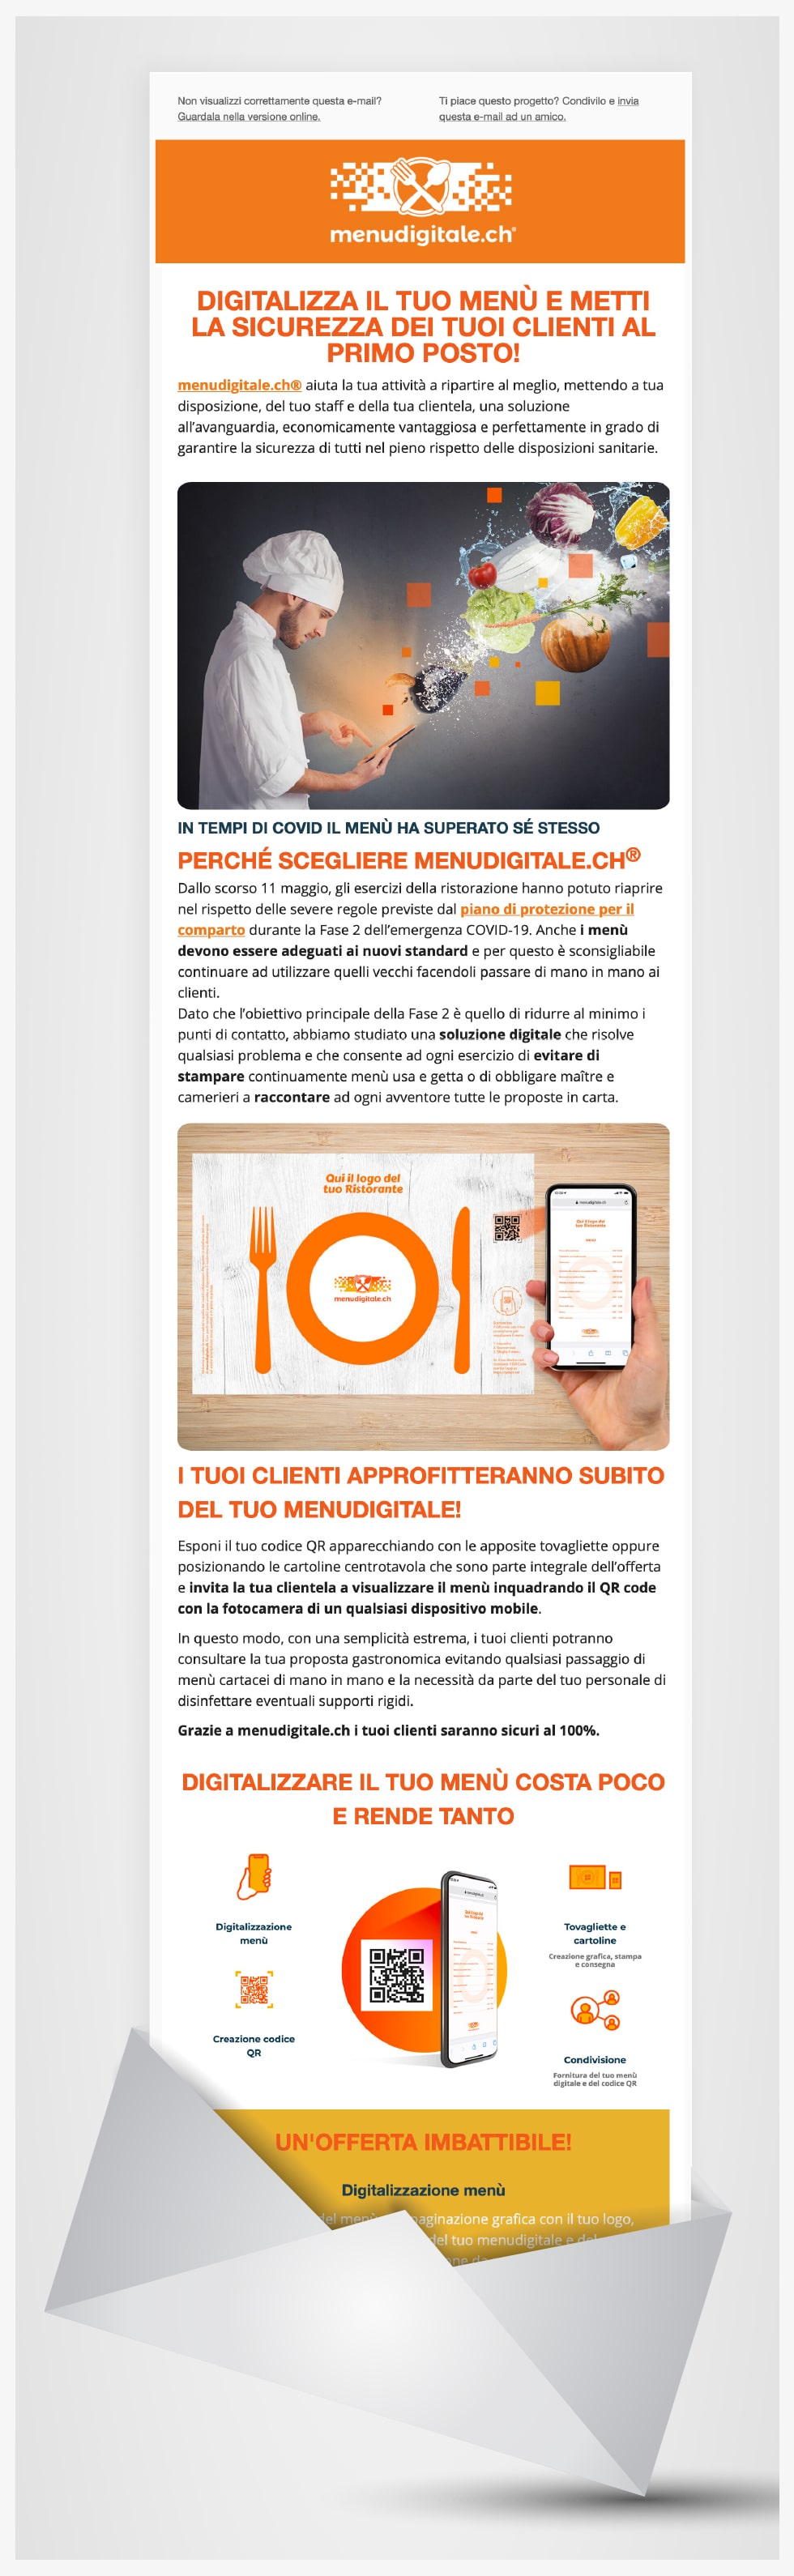 Image of a newsletter for menudigitale.ch